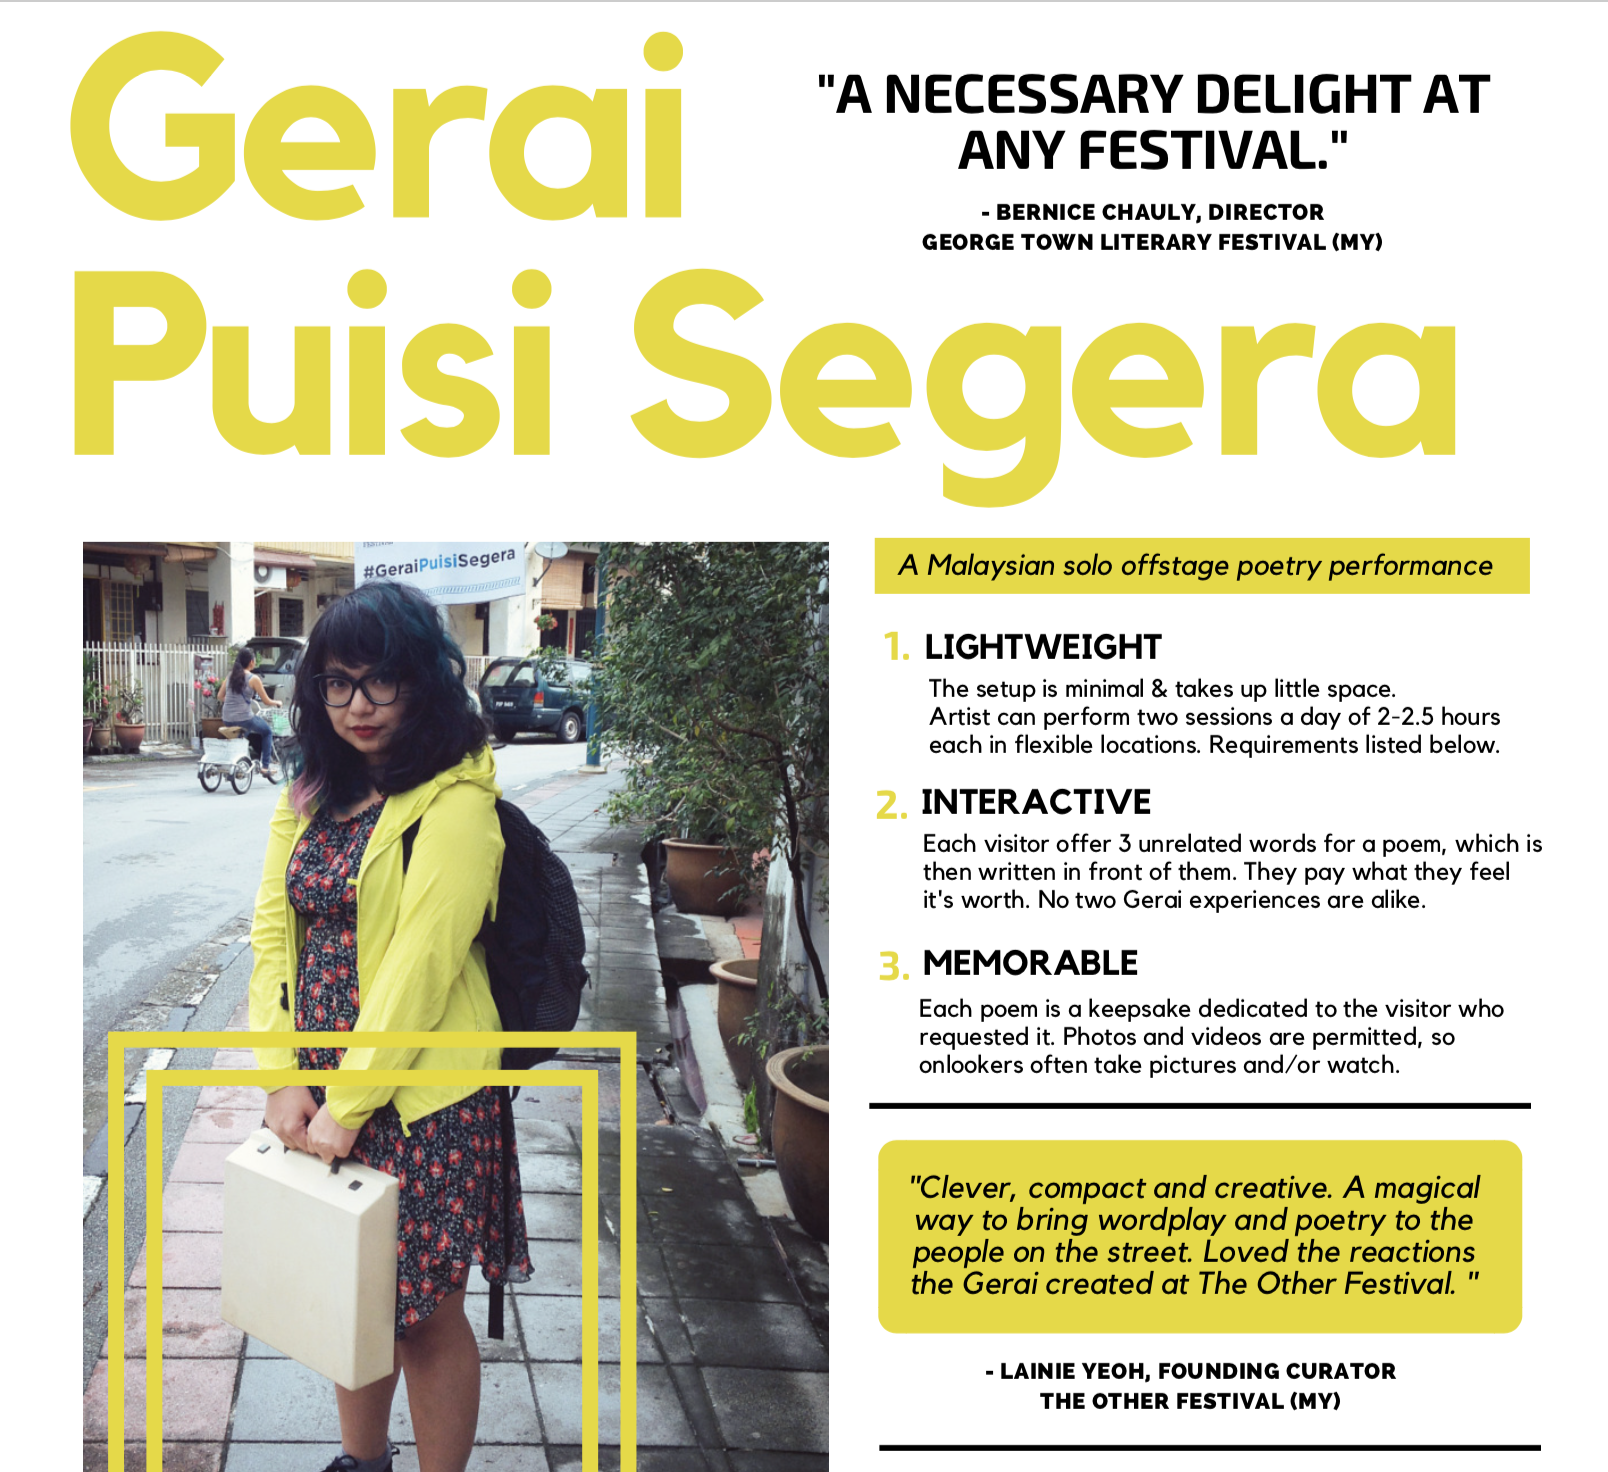 """""""A necessary delight at any festival"""" - Bernice Chauly, director, George Town Literary Festival (MY). """"Clever, compact and creative. A magical way to bring wordplay and poetry to the people on the street. Loved the reactions the Gerai created at The Other Festival."""" - Lainie Yeoh, founding curator, The Other Festival (MY)."""